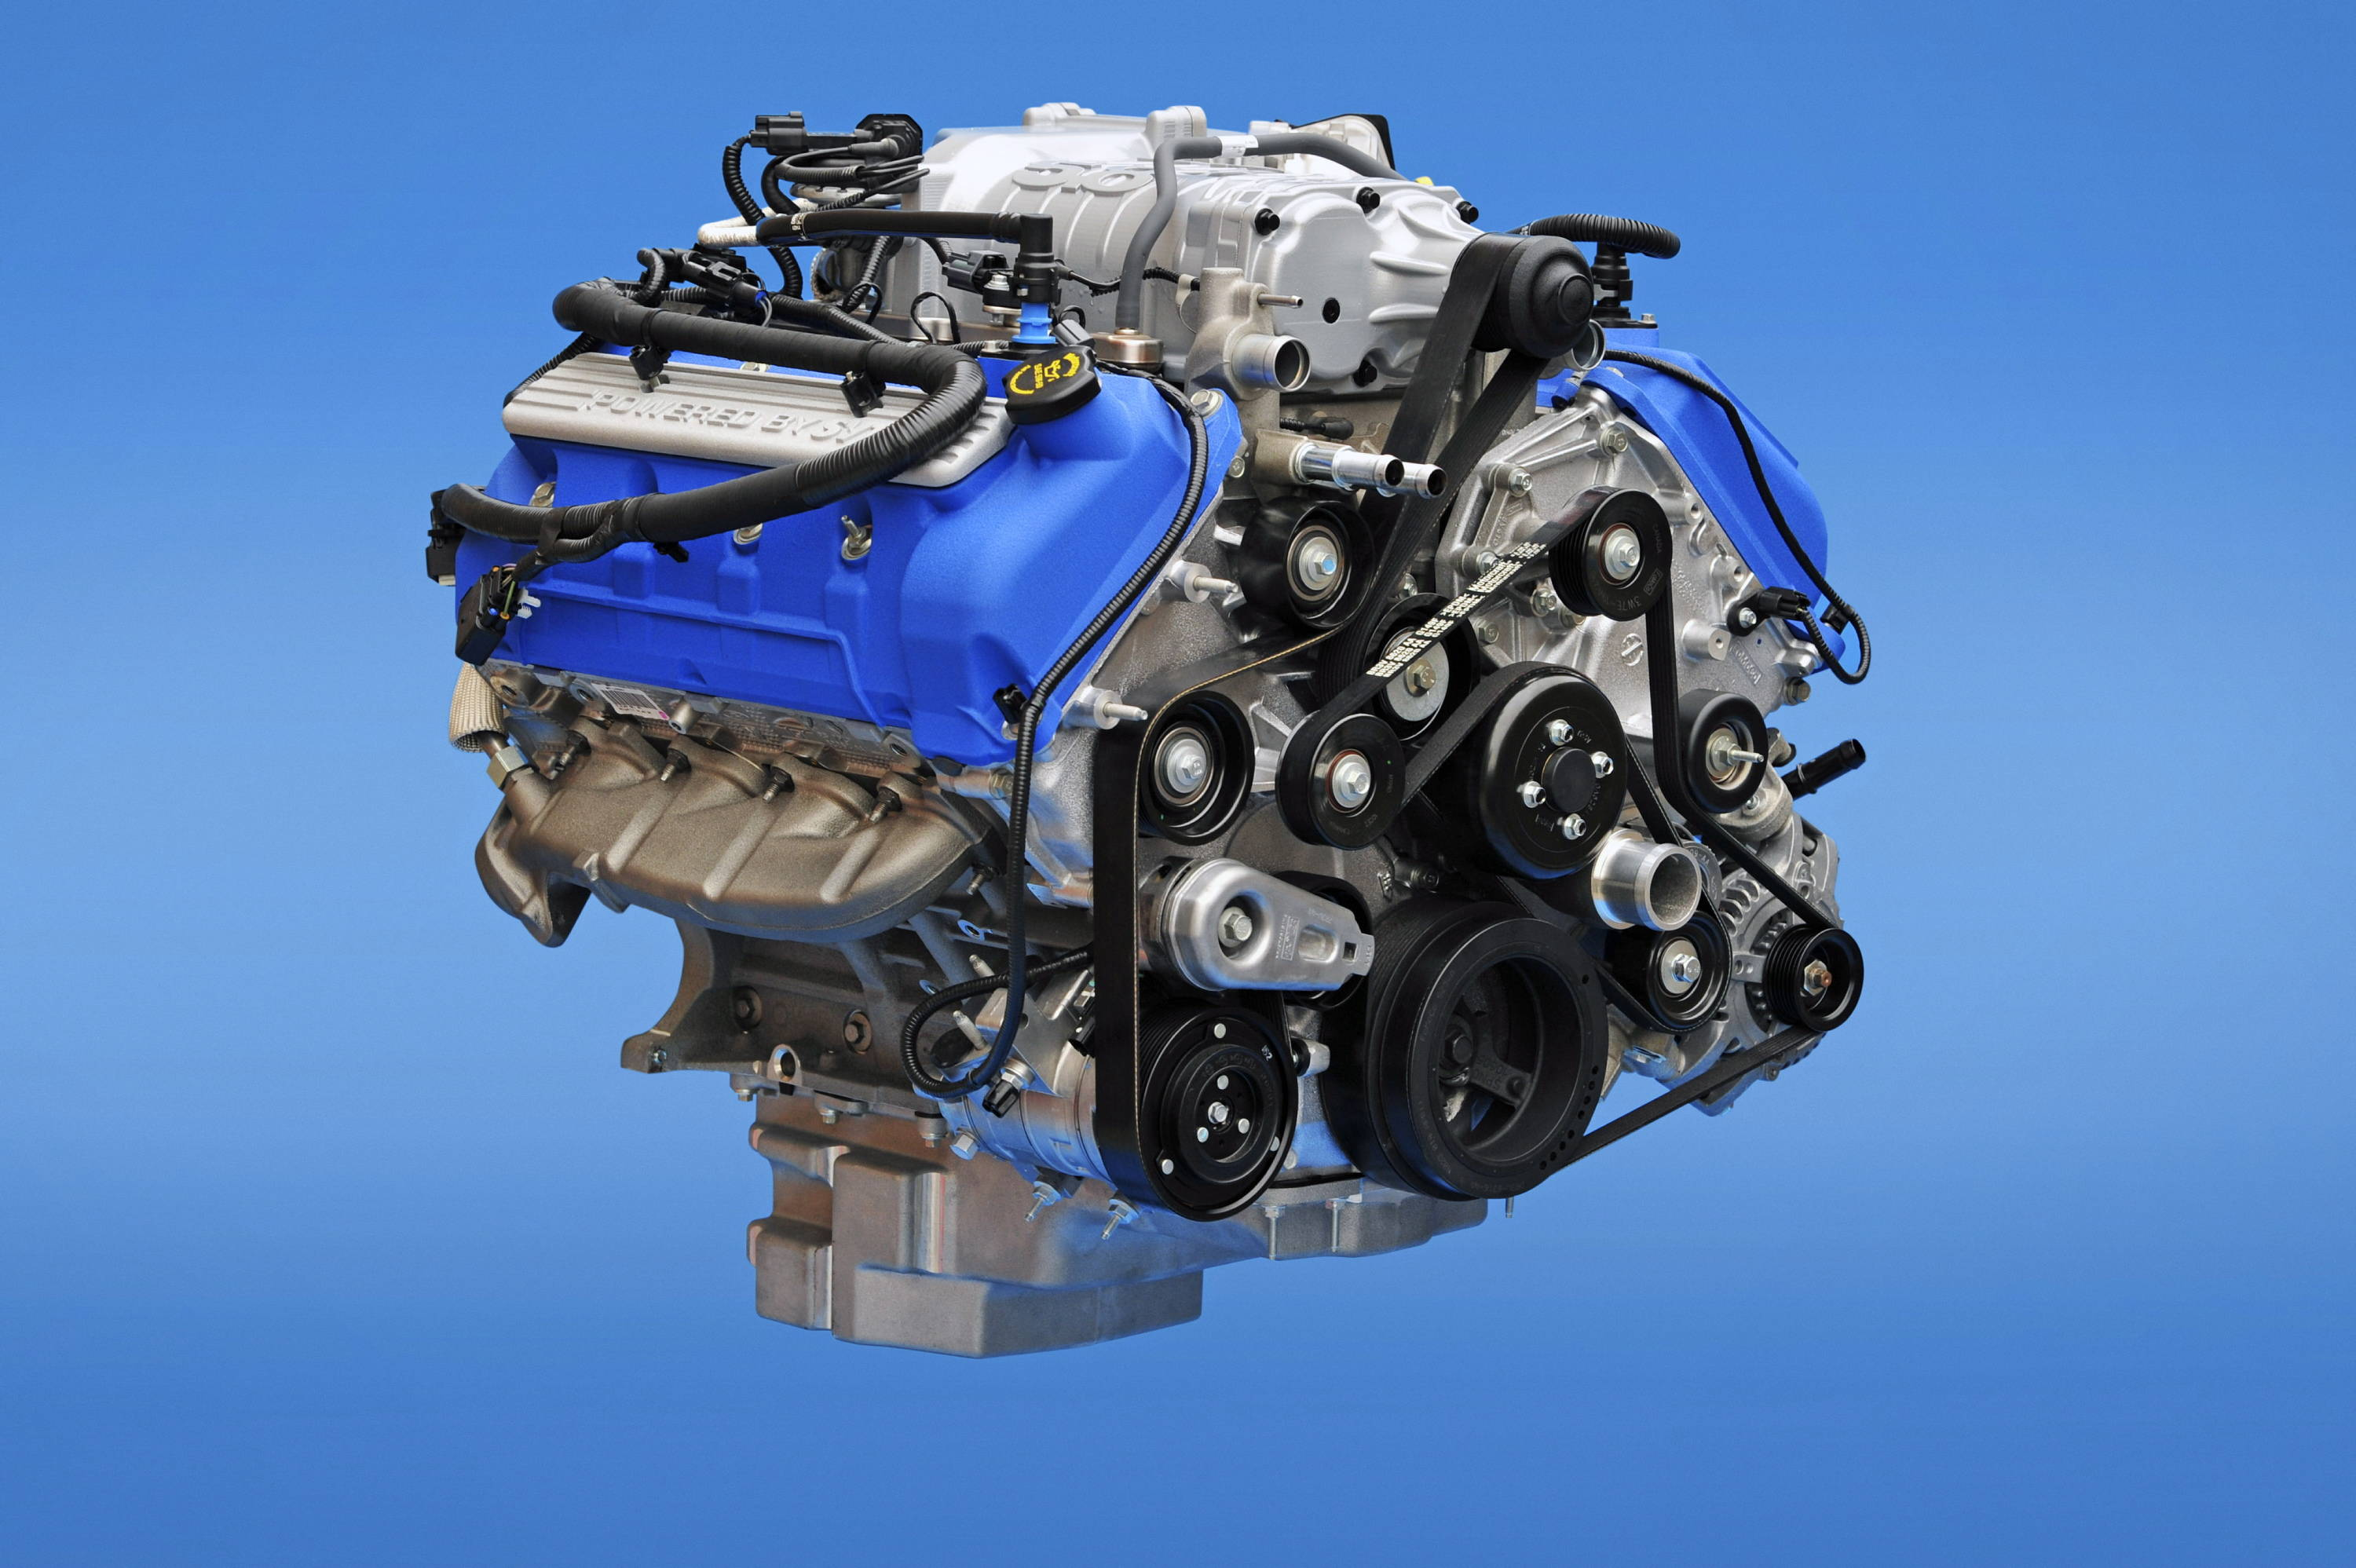 Ford Engine Full HD Wallpaper and Background Image ...